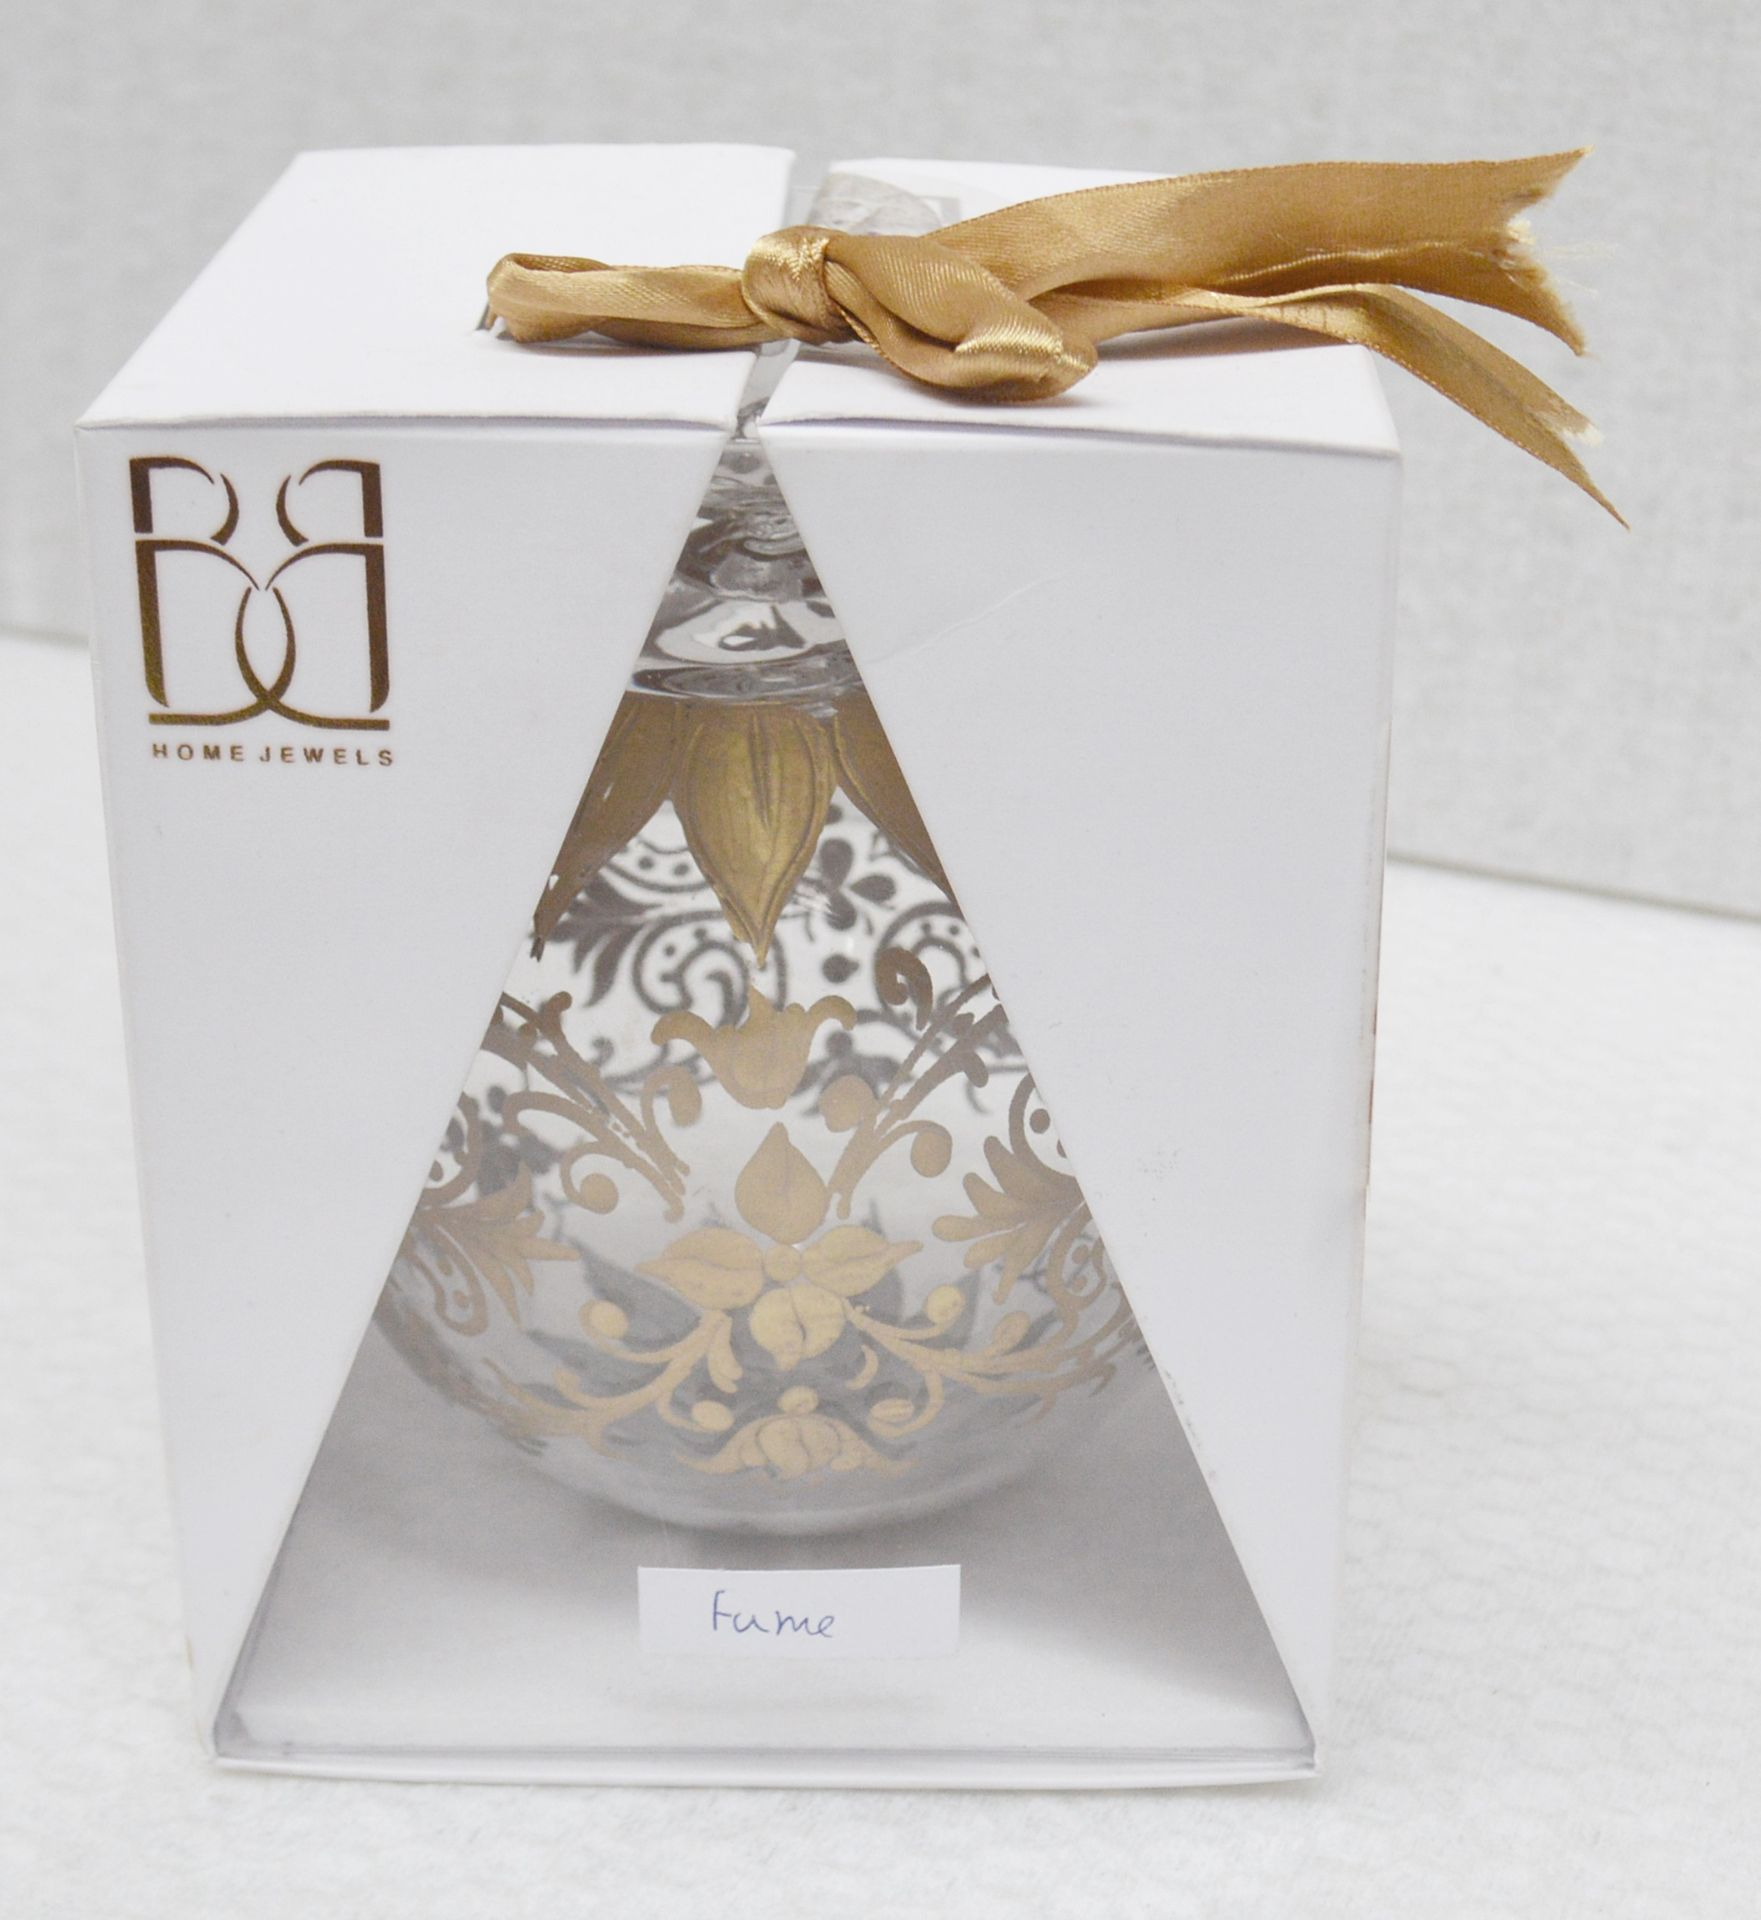 1 x BALDI 'Home Jewels' Italian Hand-crafted Artisan Christmas Tree Decoration In Gold - Dimensions: